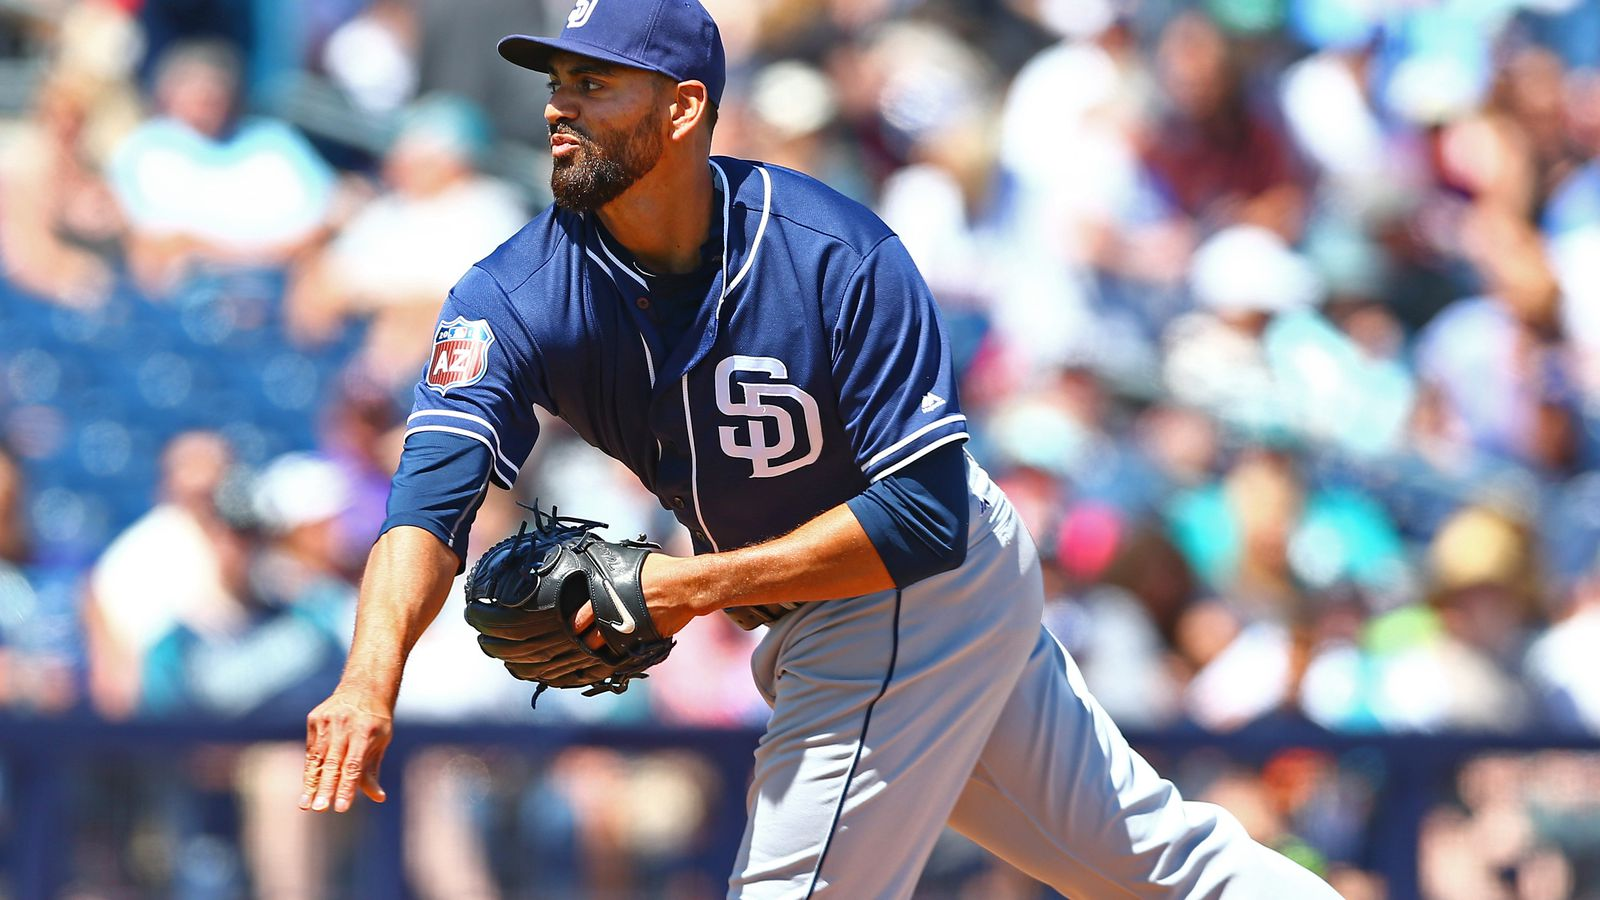 Rangers sign Tyson Ross to 1-year, $6 million deal